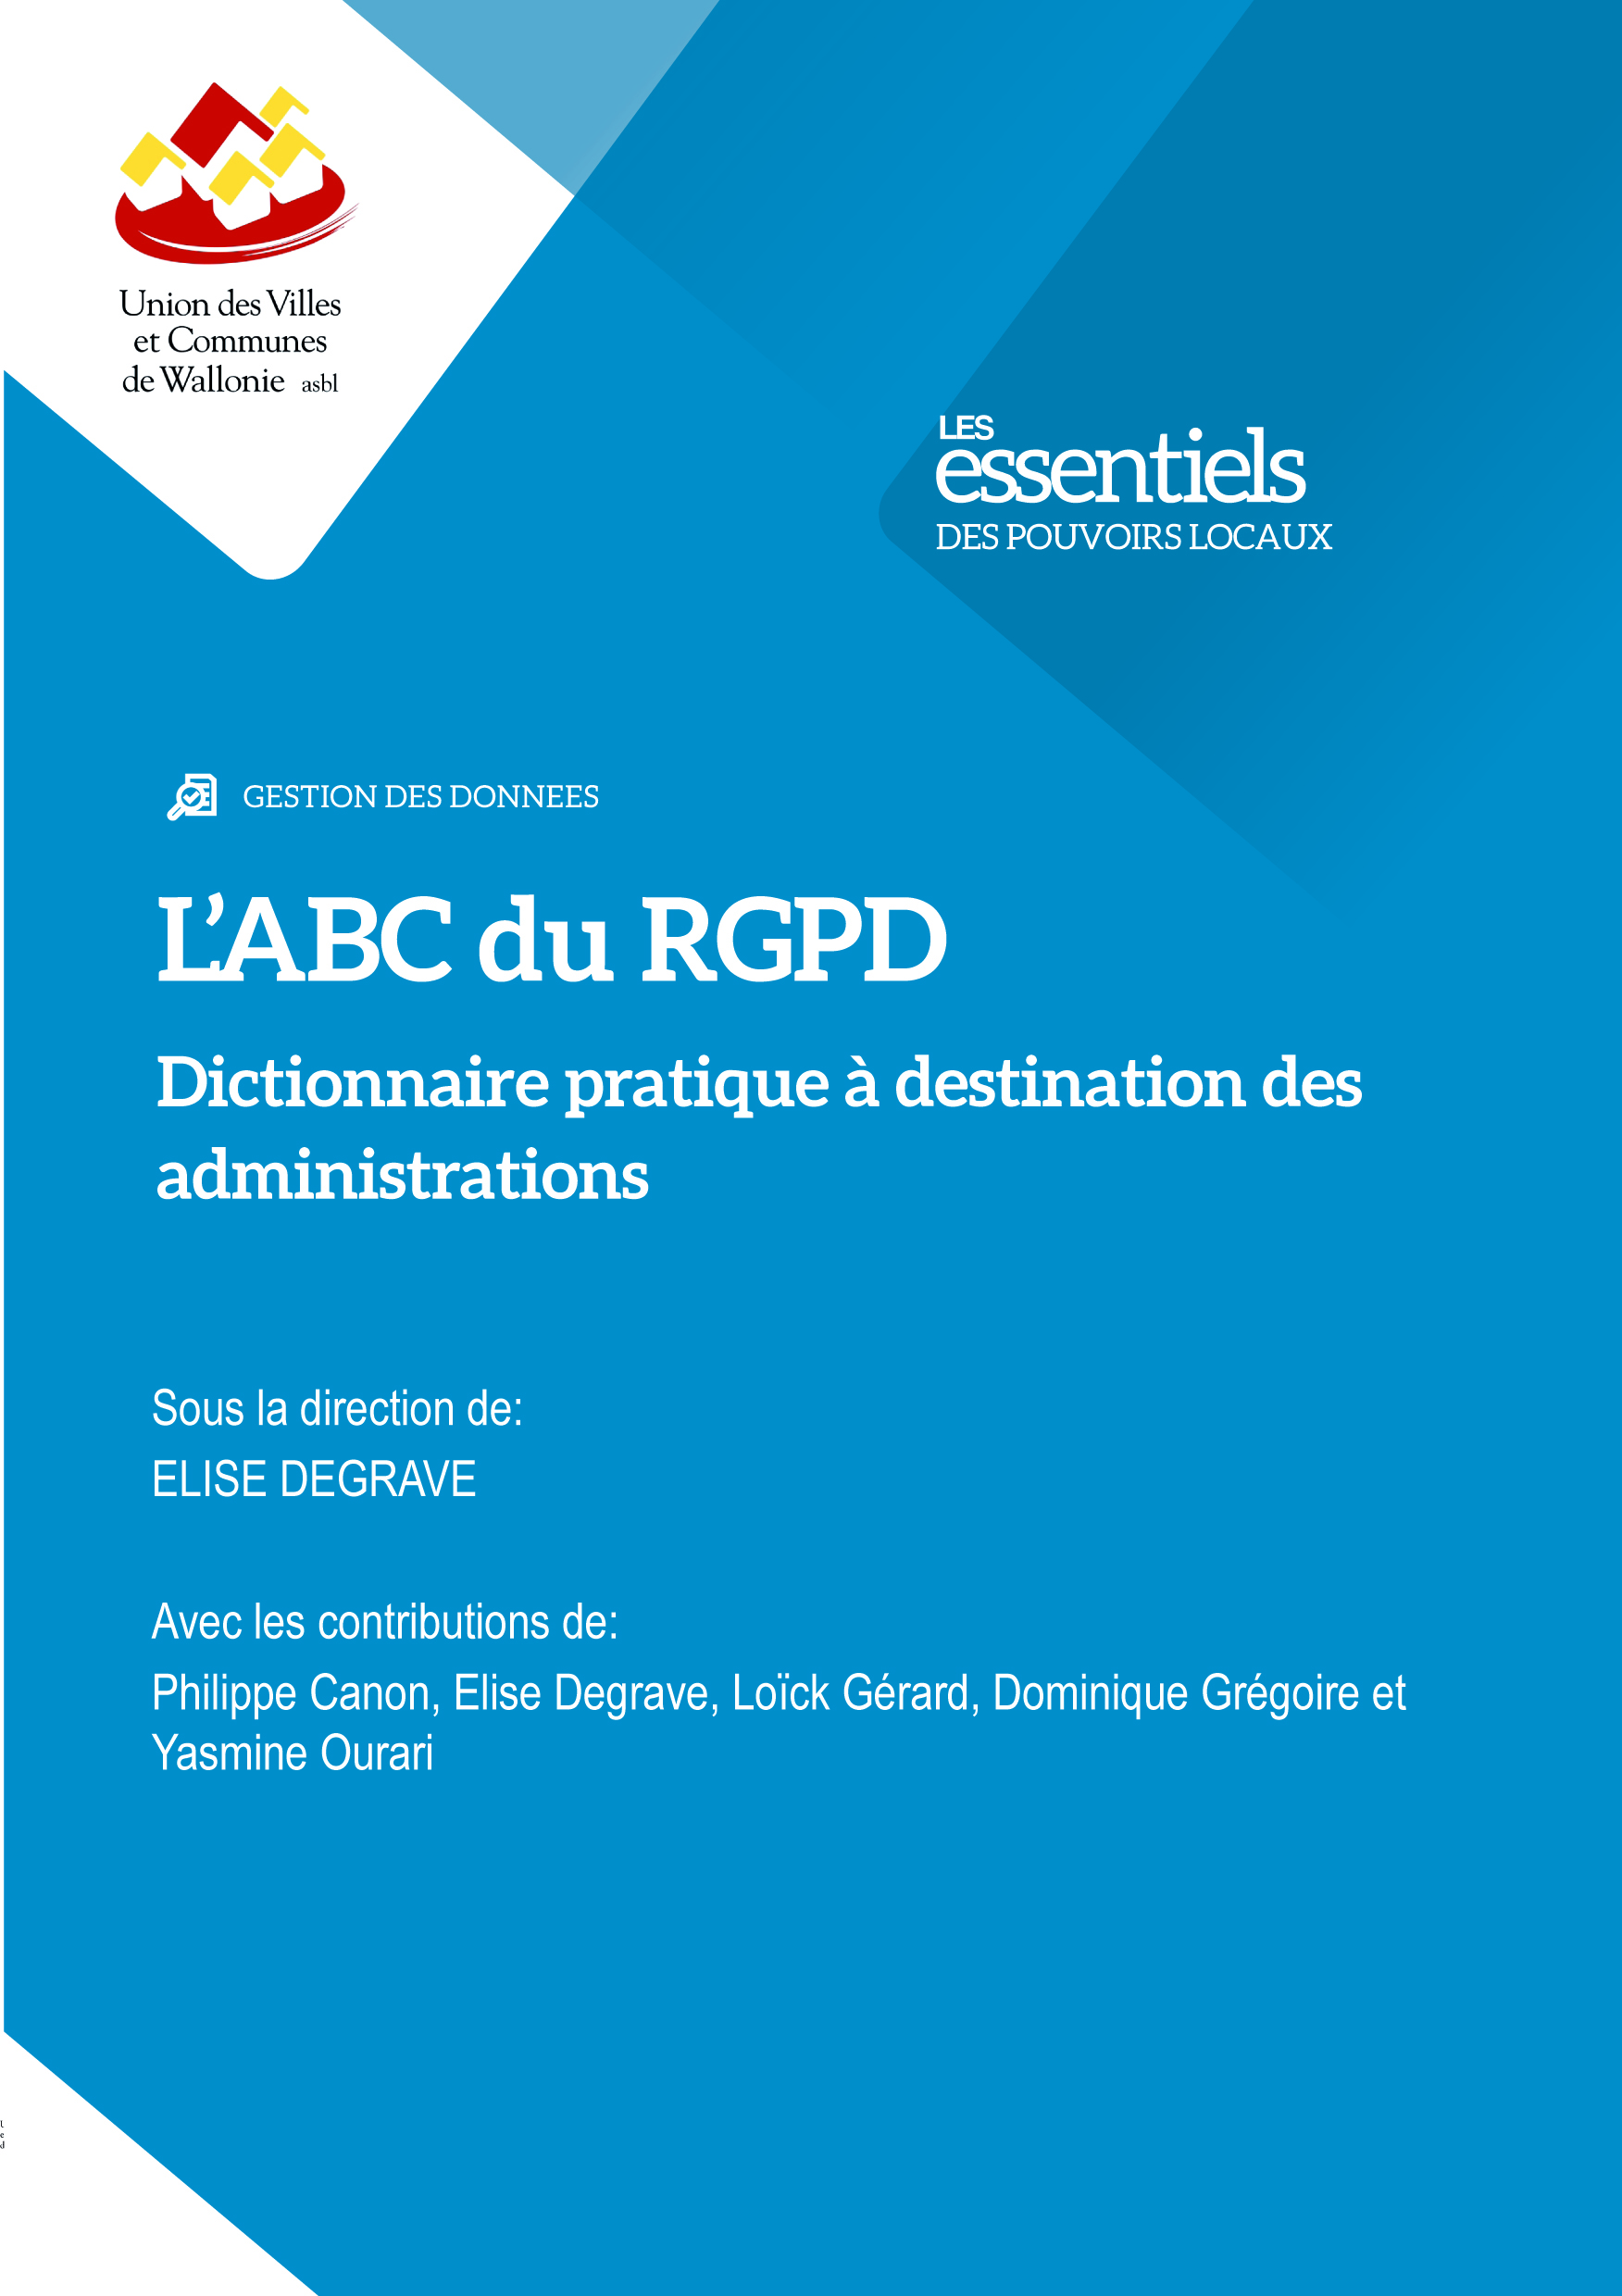 L'ABC du RGPD: dictionnaire pratique à destination des administrations